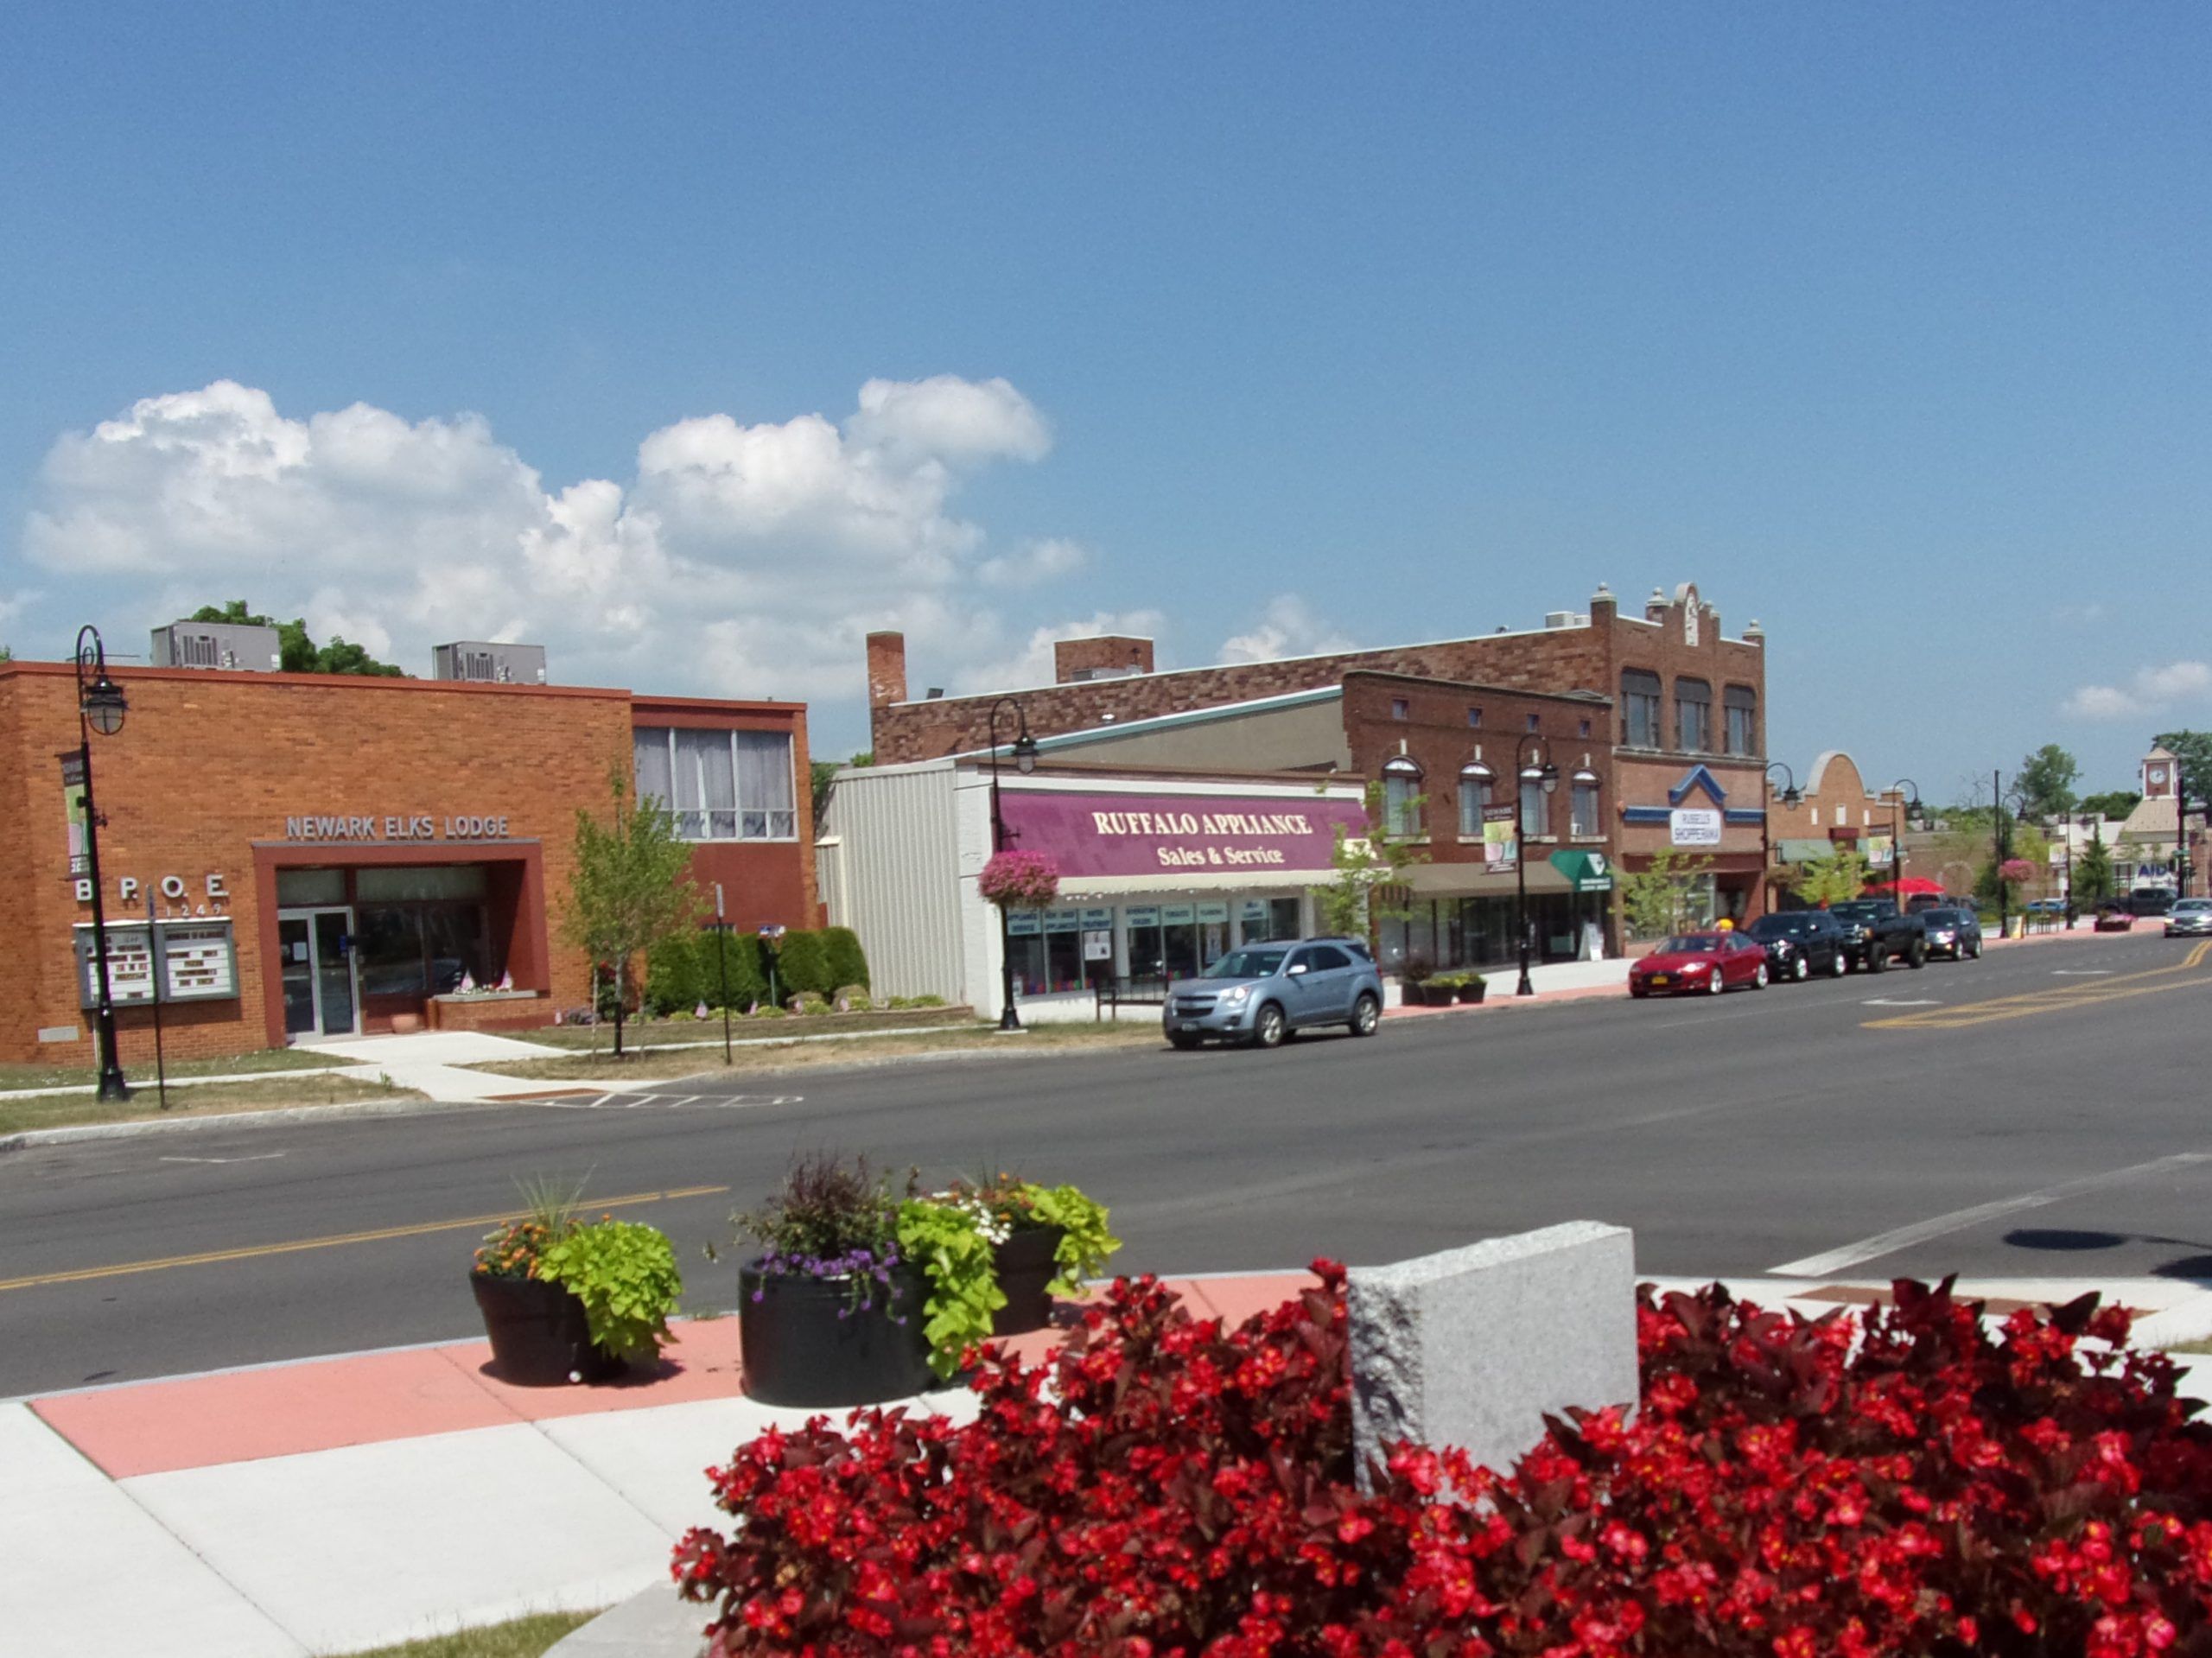 Village of Newark continues on its revitalizing efforts, winning another 6K through Main Street grant program